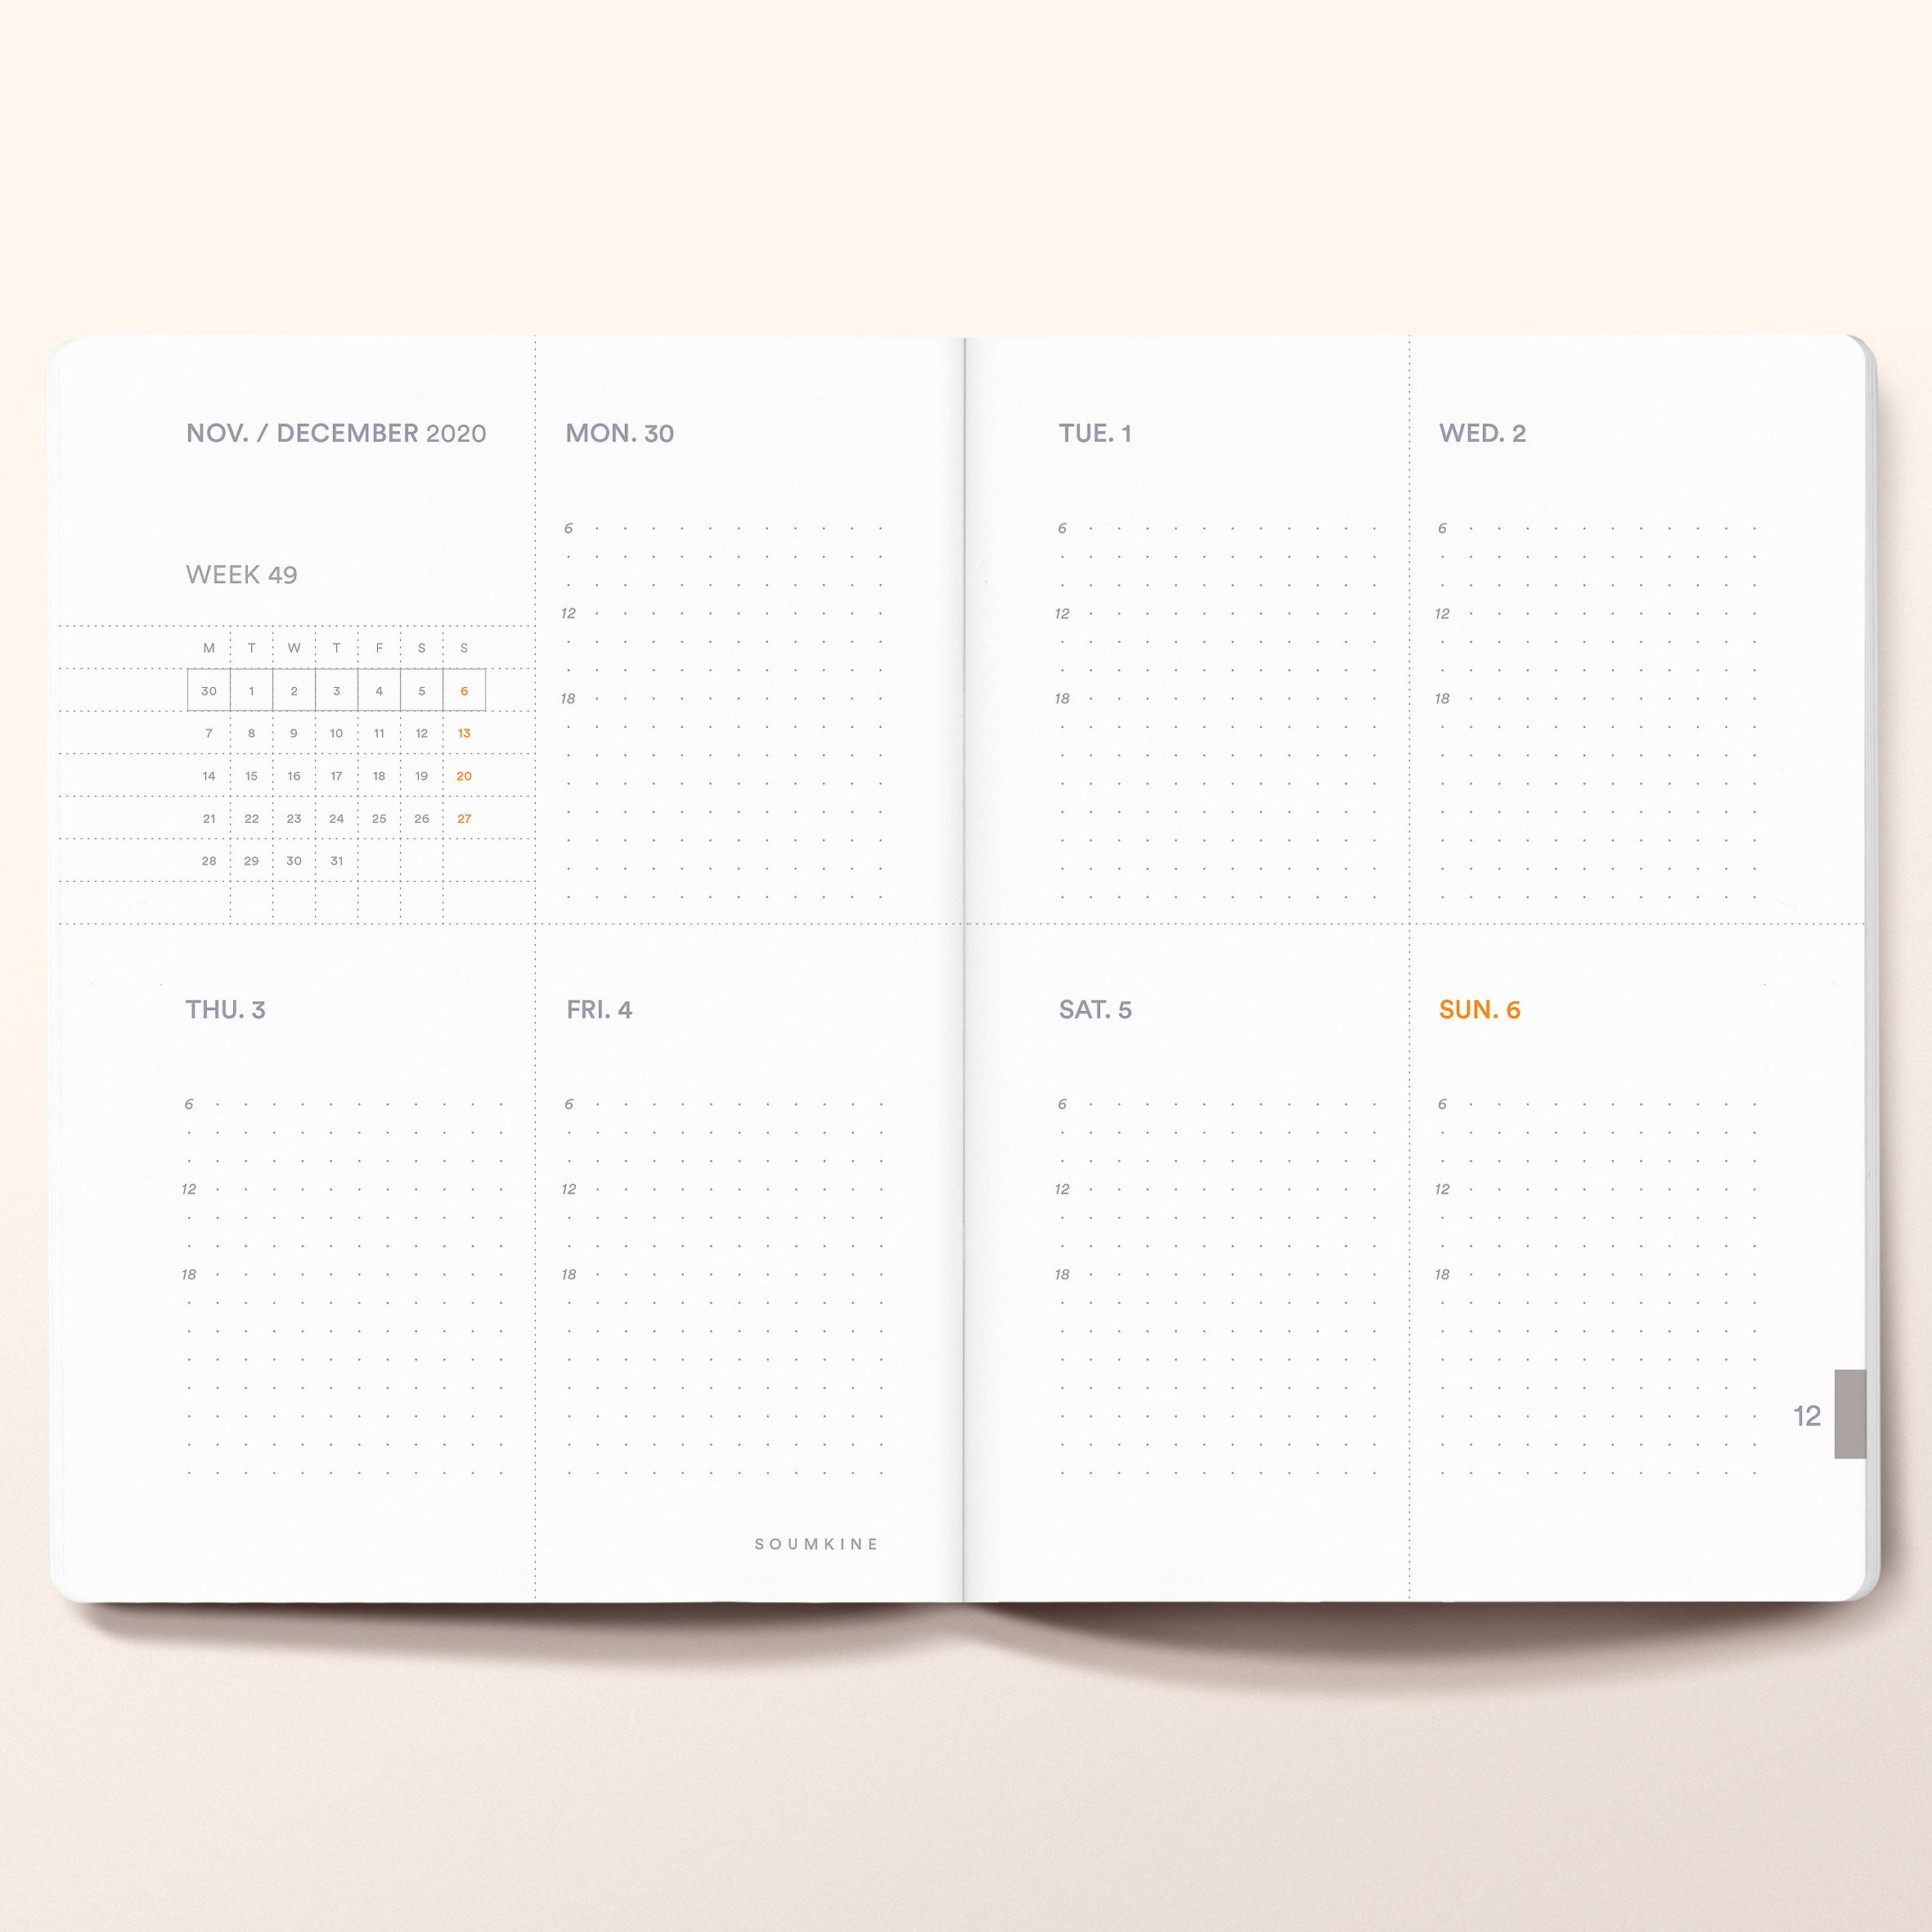 """Untitled 01"" by Anna Chask. 2021 Weekly planner B6 Size. 100% Cotton Paper"